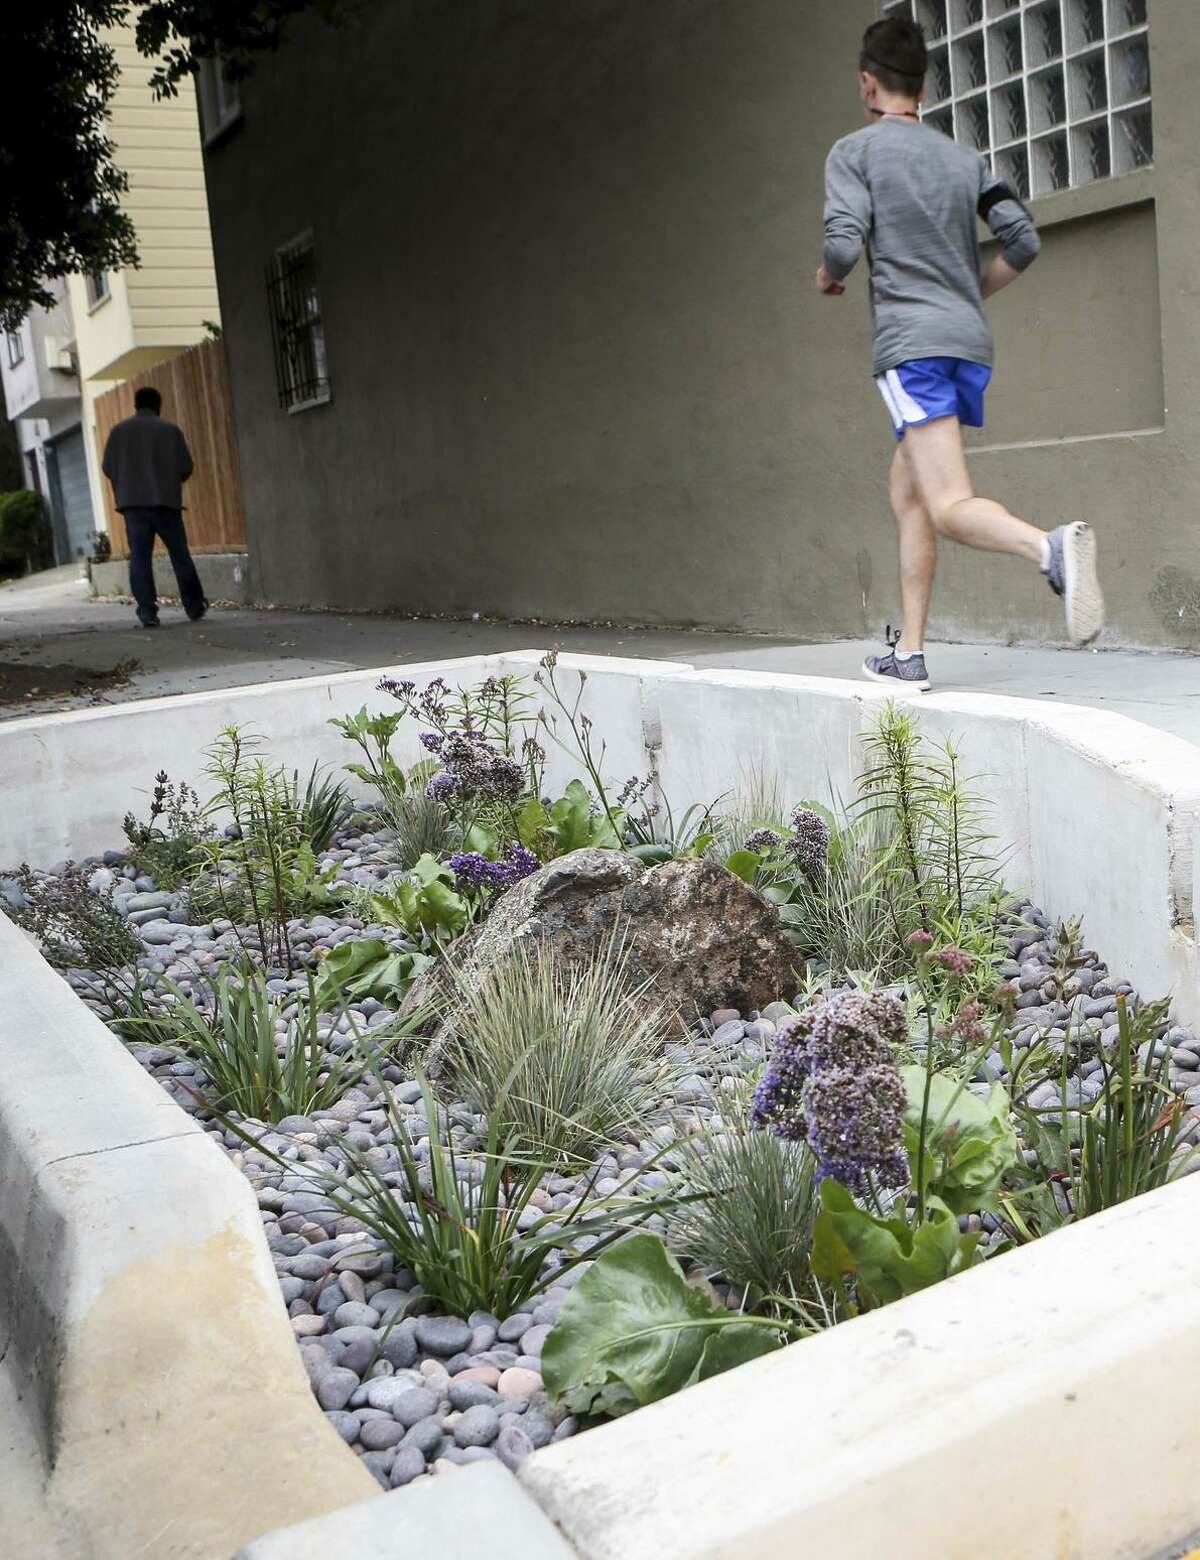 The first of the S.F. Public Utilities Commission's planned rain gardens, designed to dress up city streets while saving water, opens at Holloway and Jules avenues.